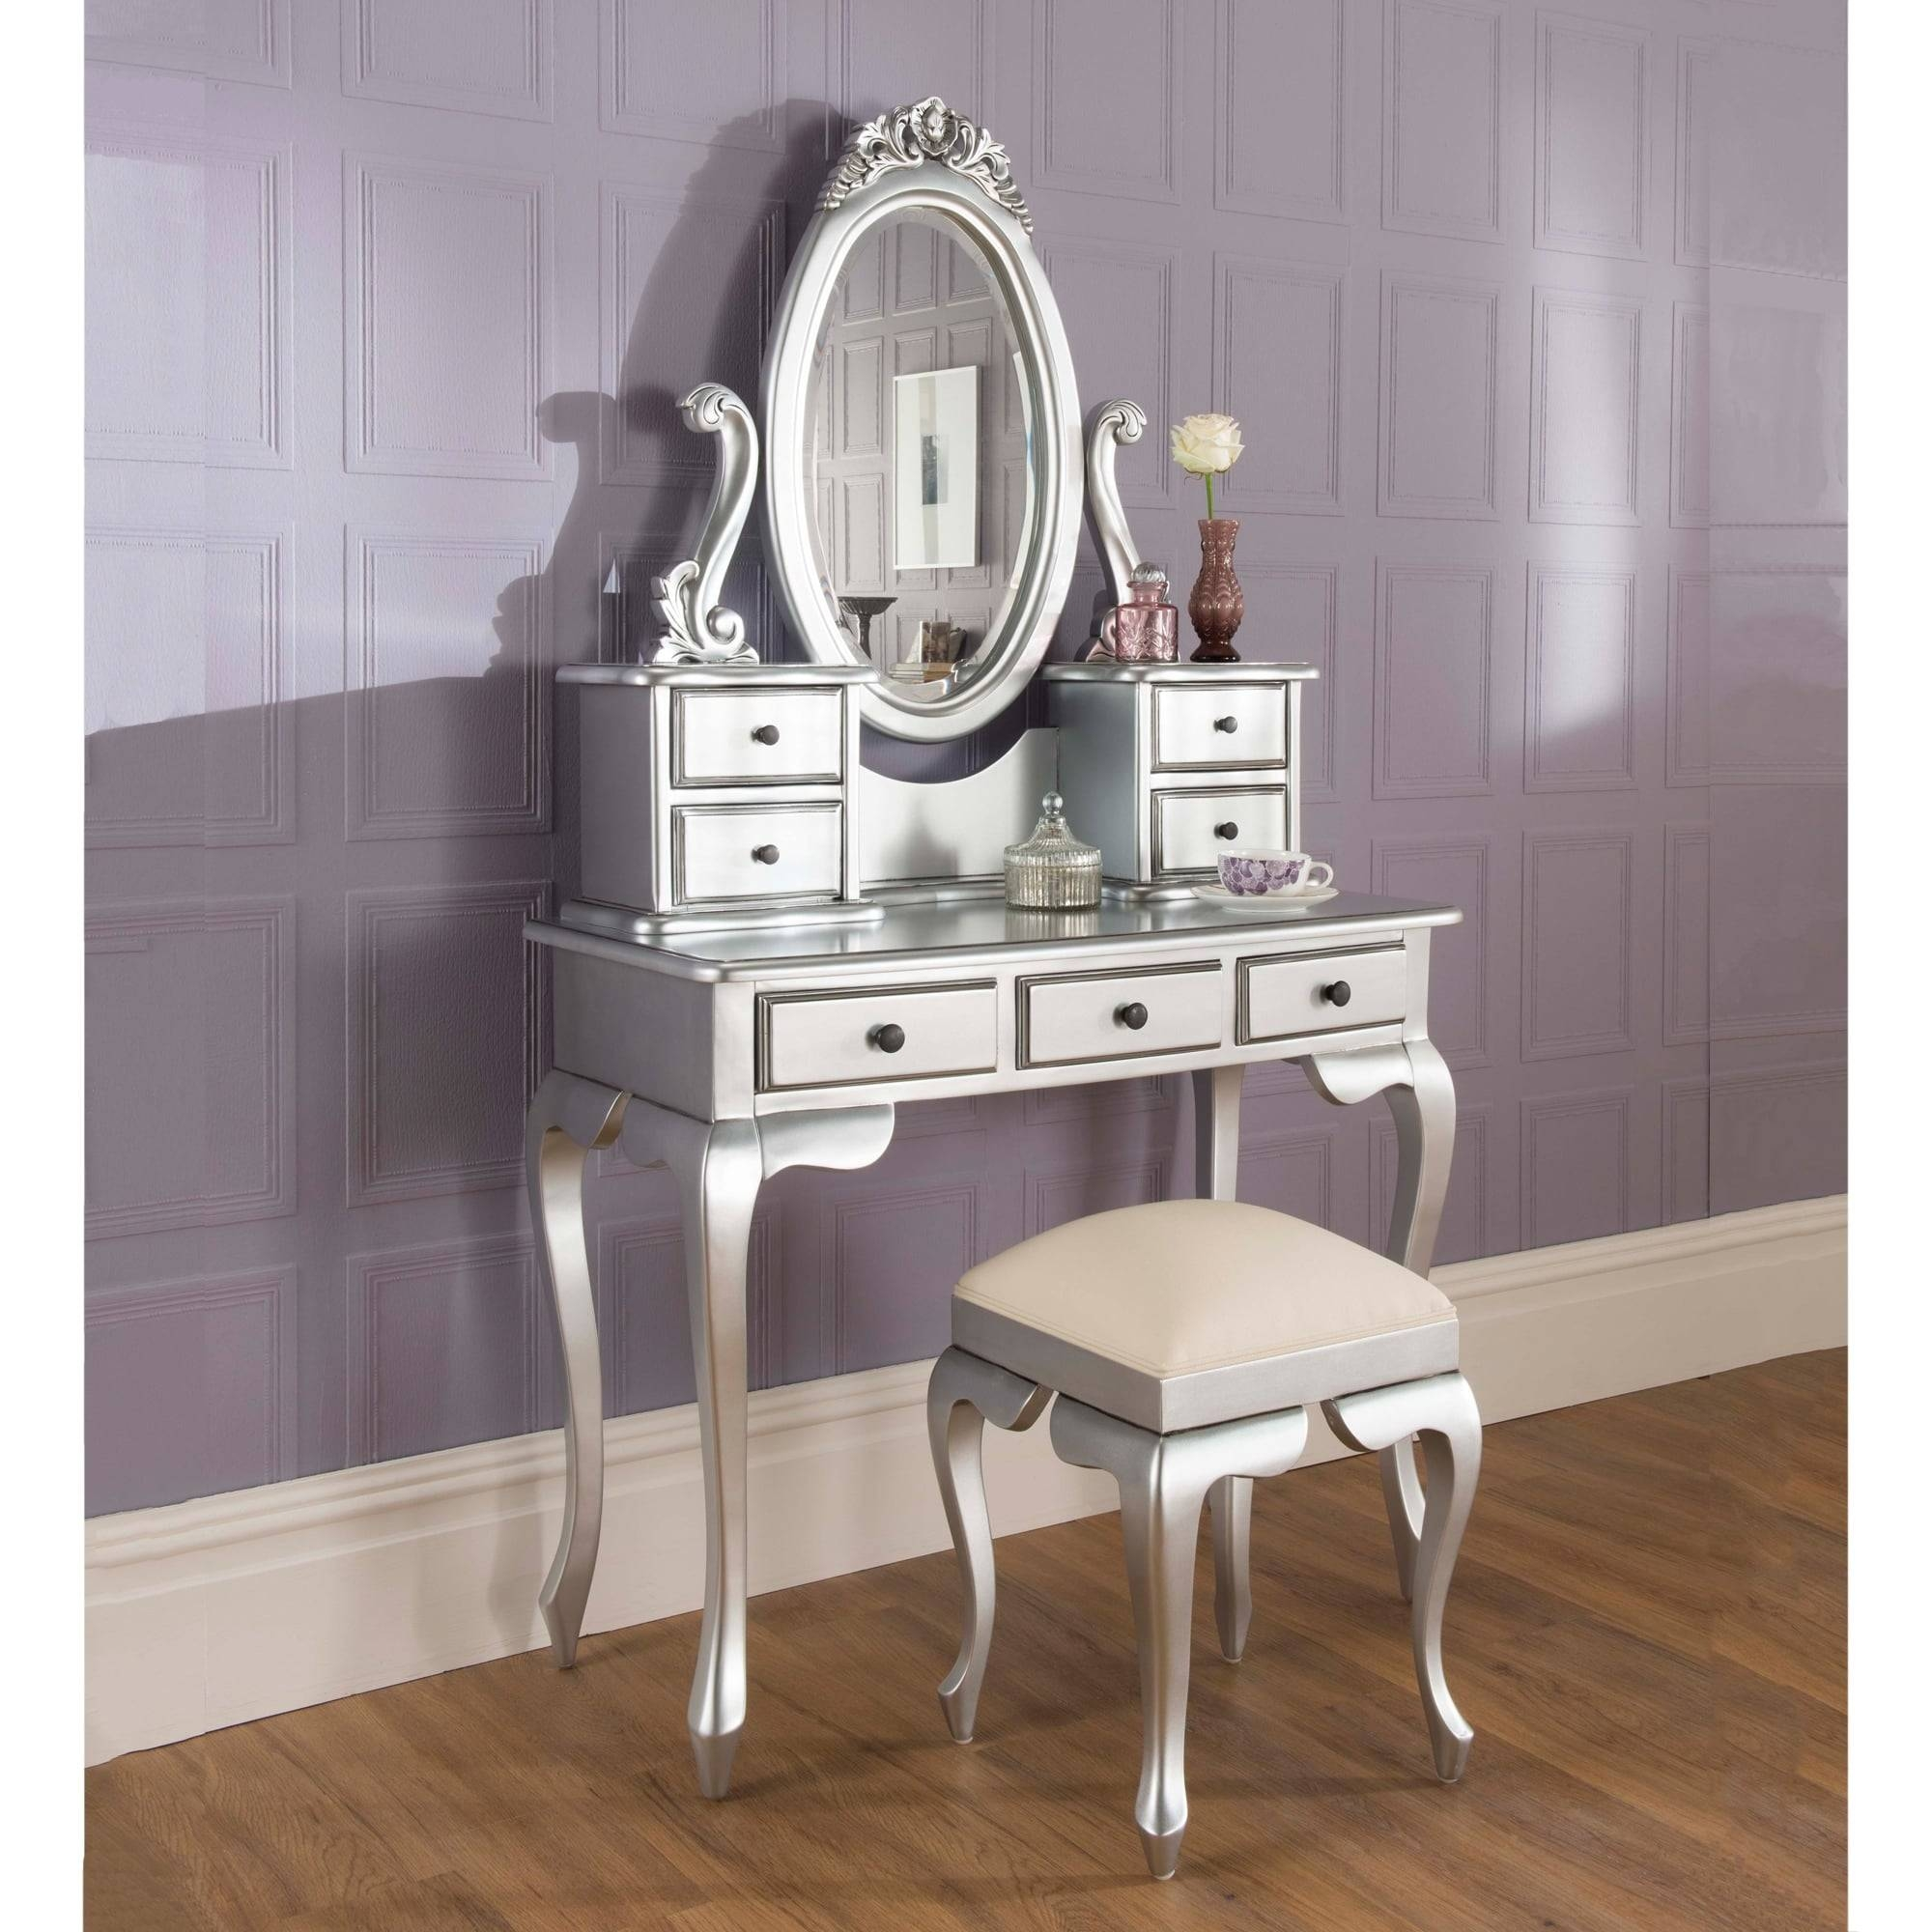 Silver Dressing Table Set | Antique French Intended For Silver Dressing Table Mirrors (View 14 of 15)